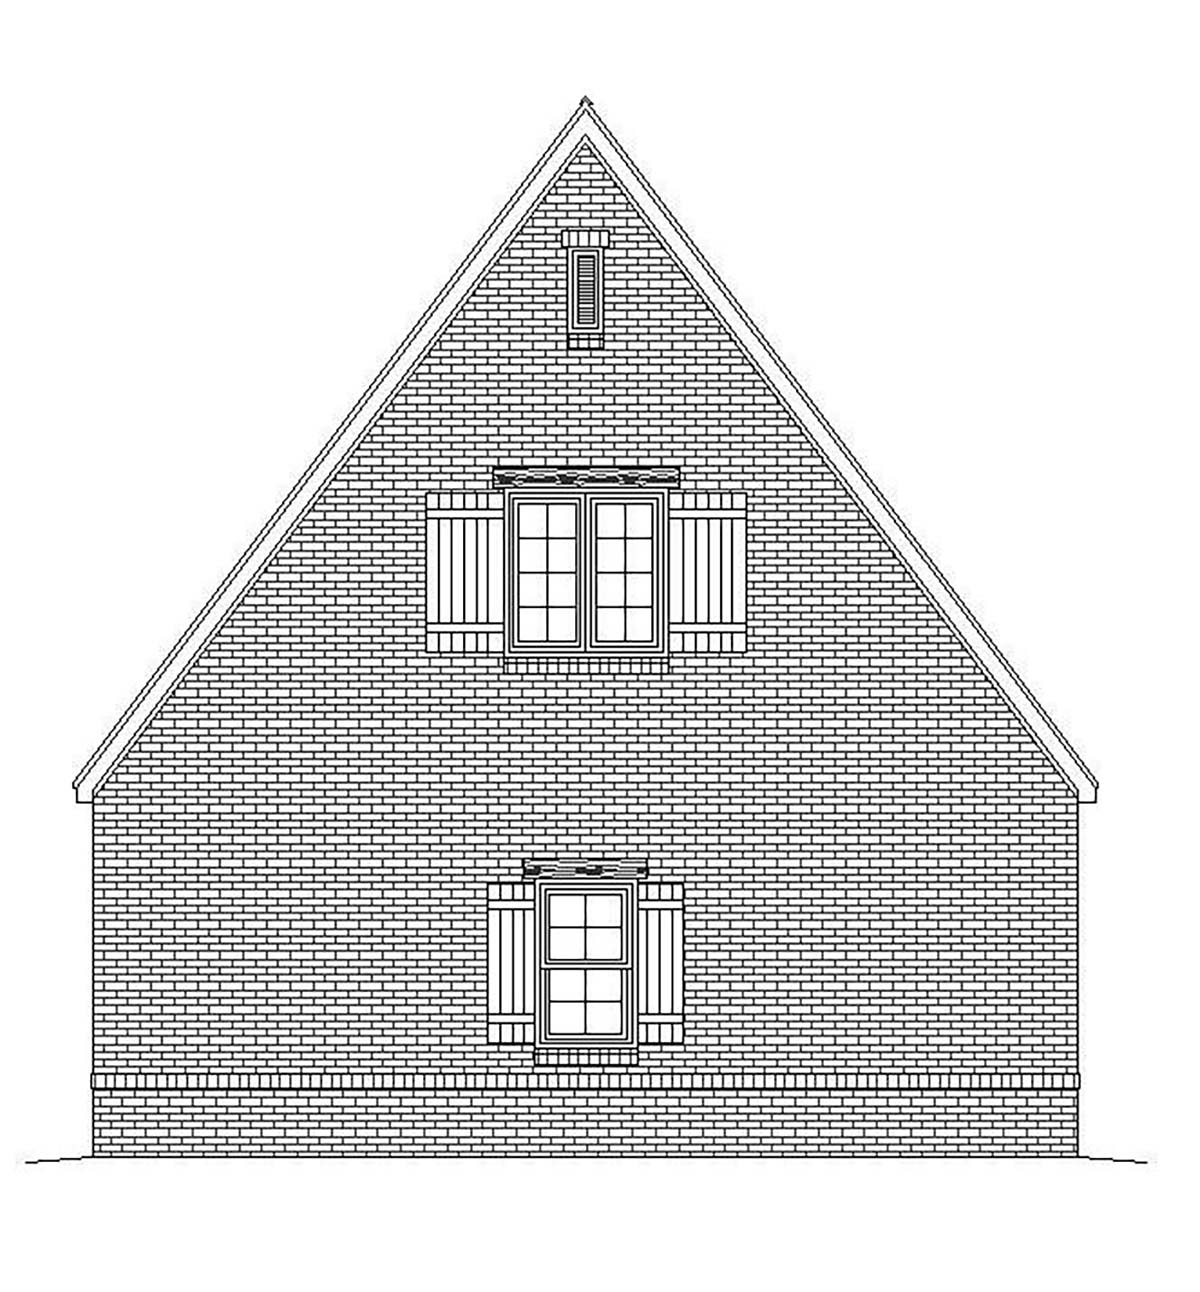 Garage Plan 51684 | European French Country Traditional Style Plan, 2 Car Garage Rear Elevation